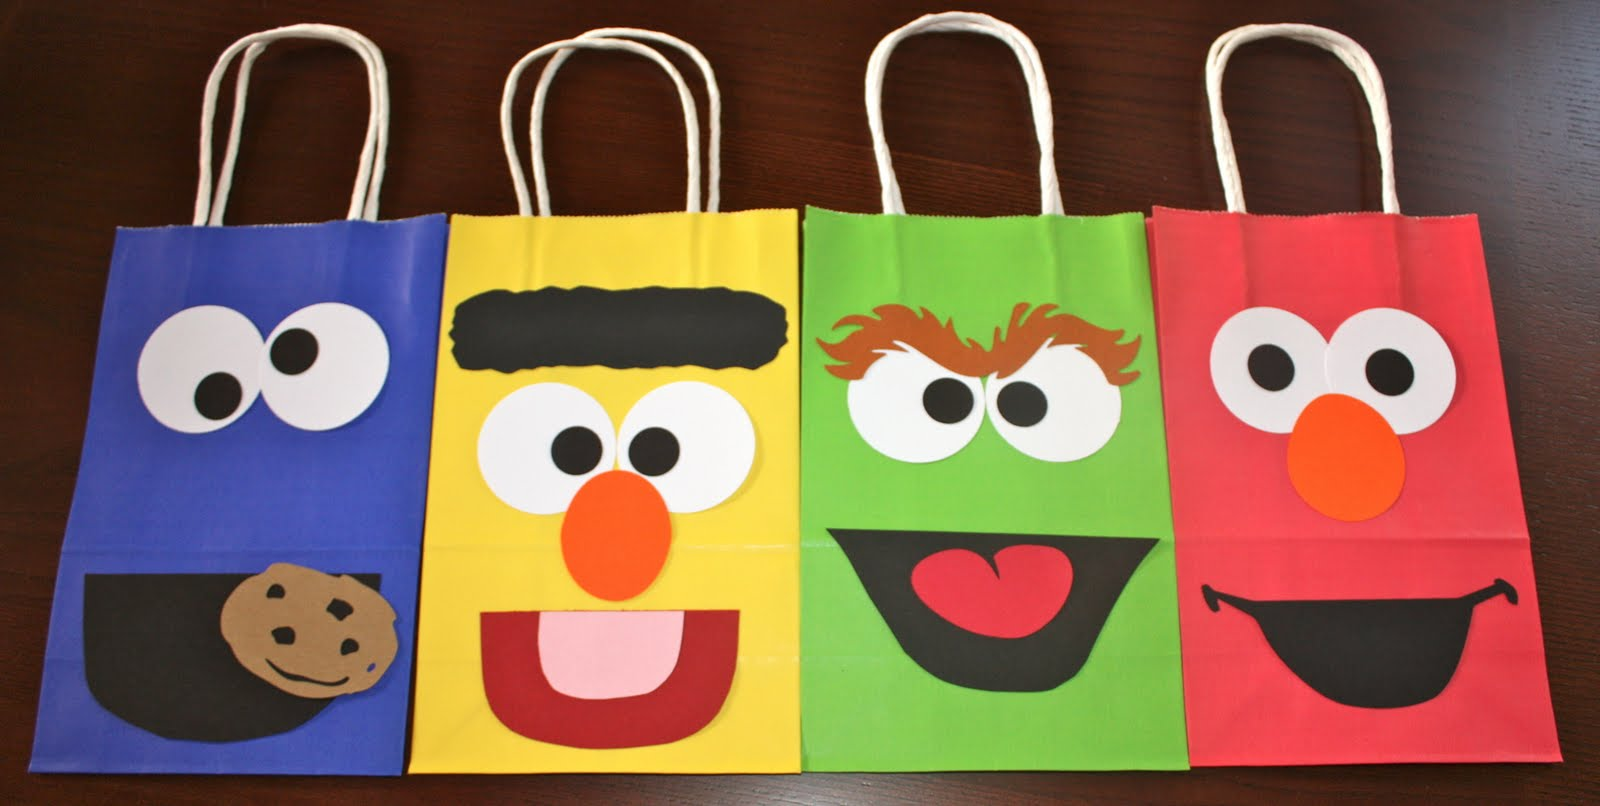 Buggys Basement Sesame Street Goodie Bags - Children's birthday goodie bags